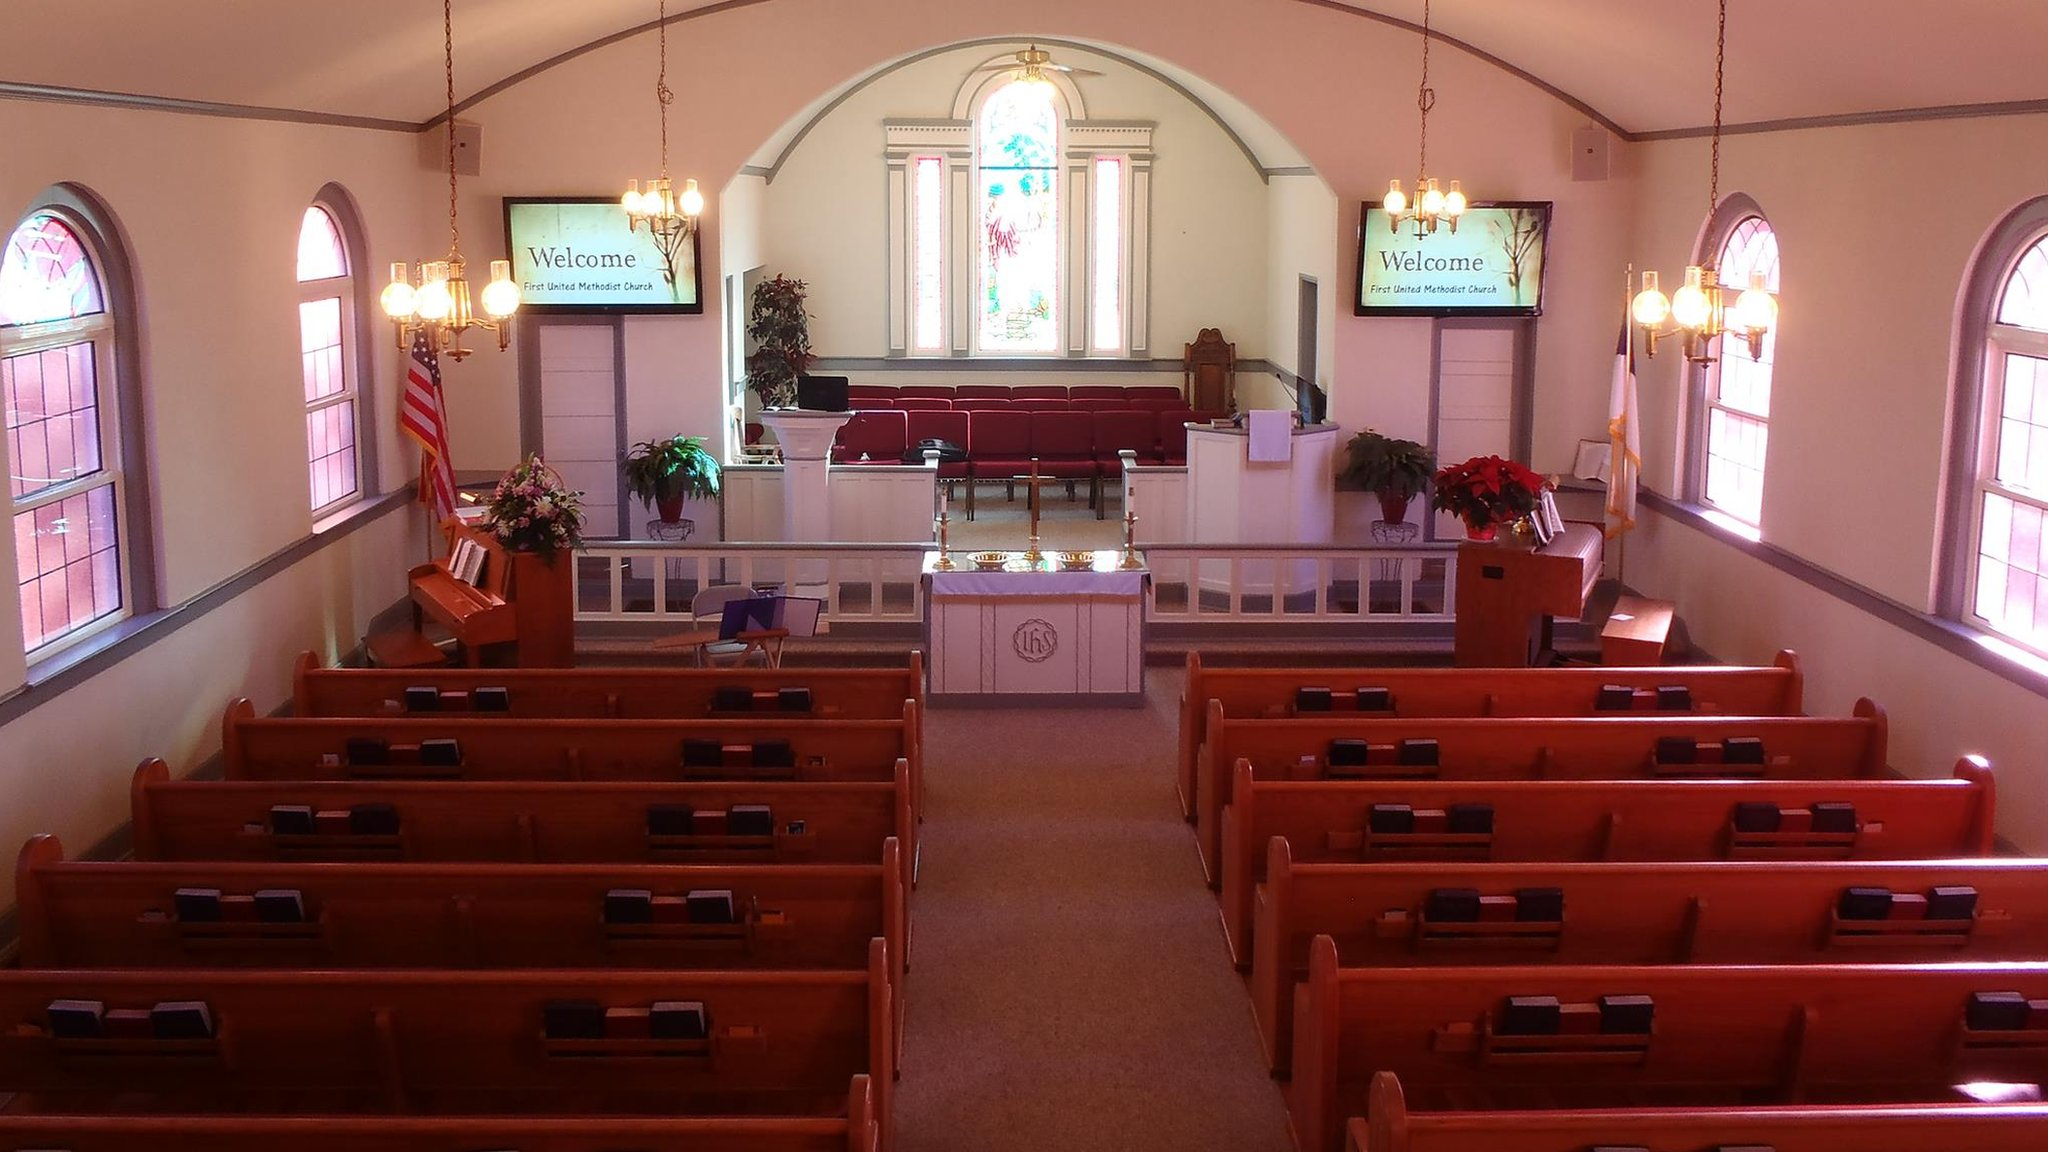 Husband and wife accidentally shot during church gun safety talk